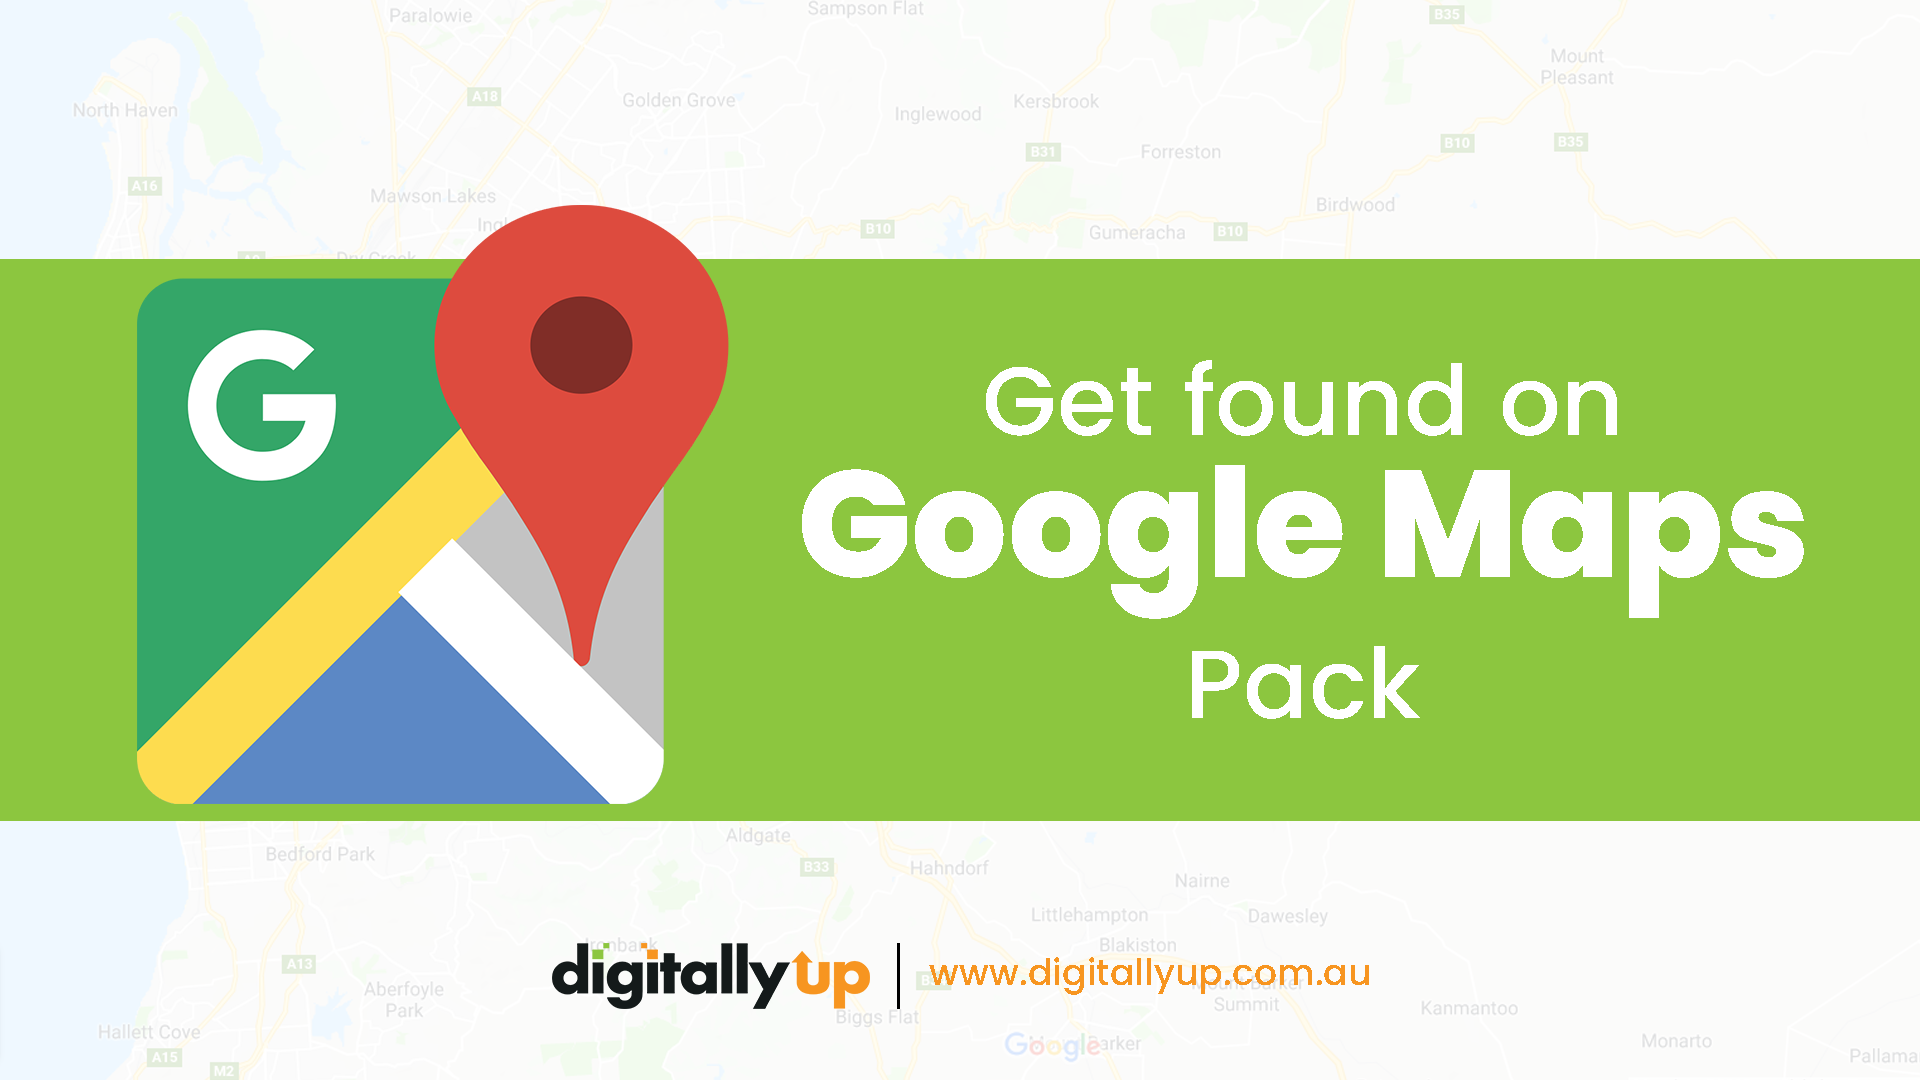 Google maps pack - How to Rank in the 3 Pack of Google Maps?